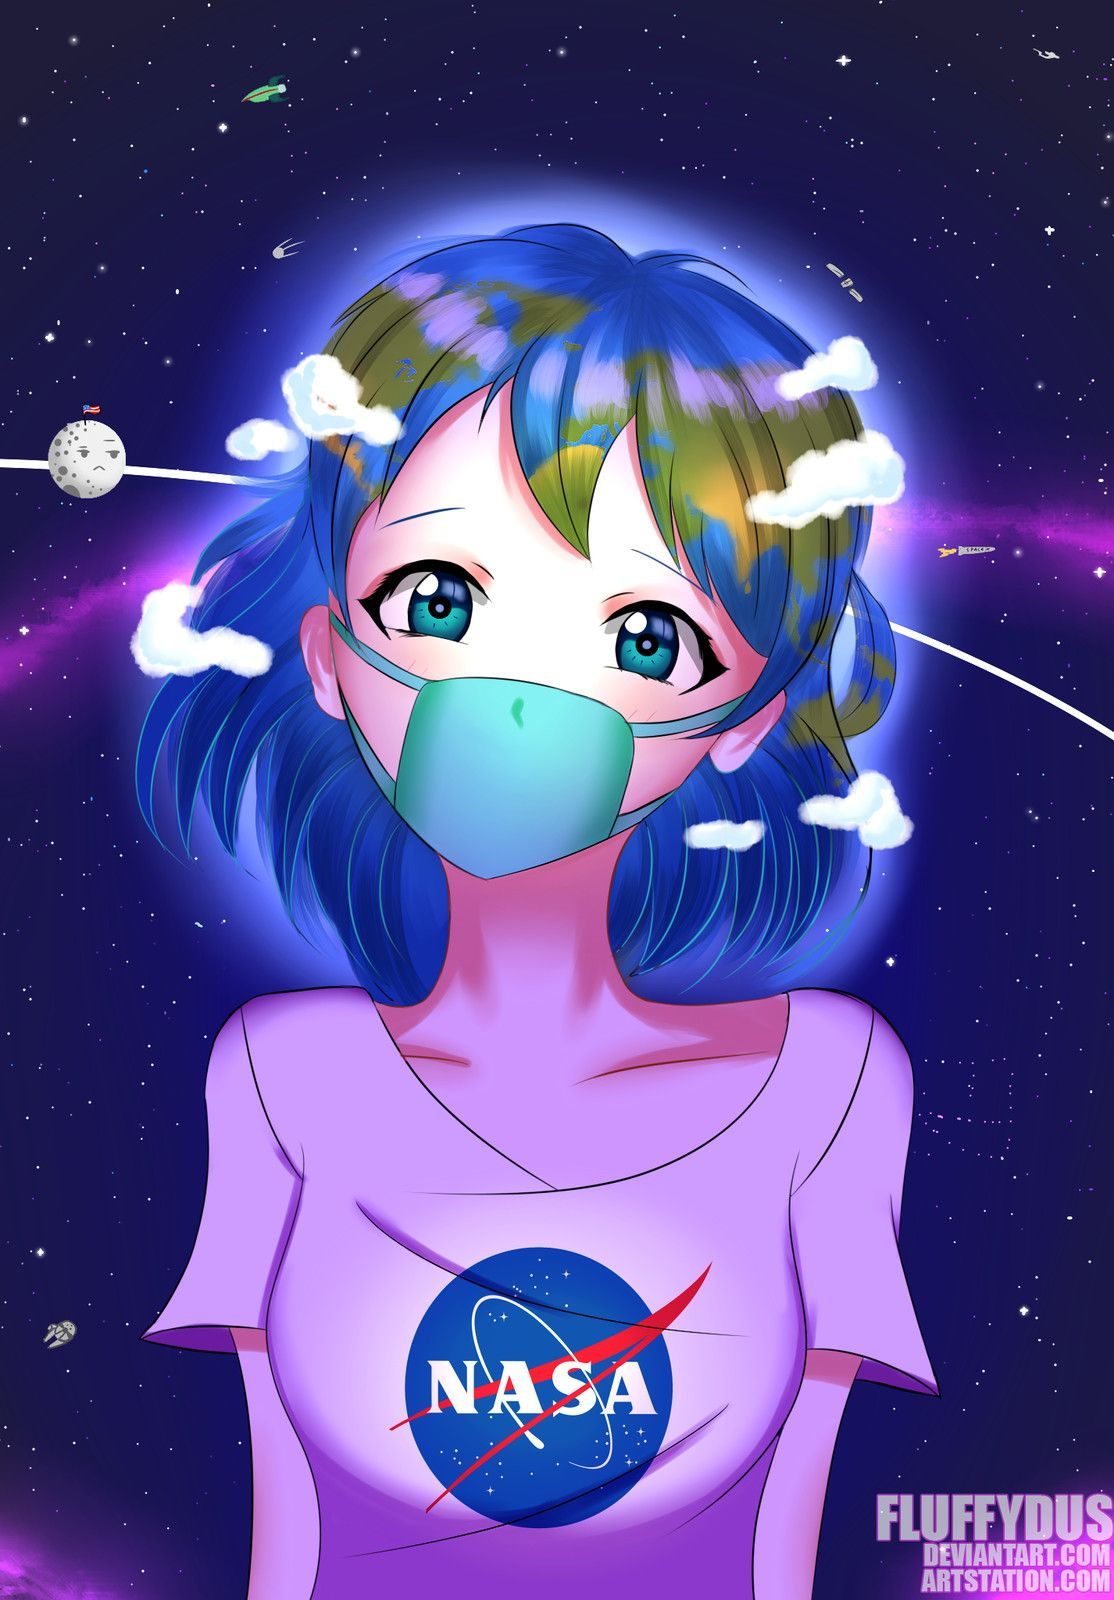 Earth-chan, Fluffy Dus